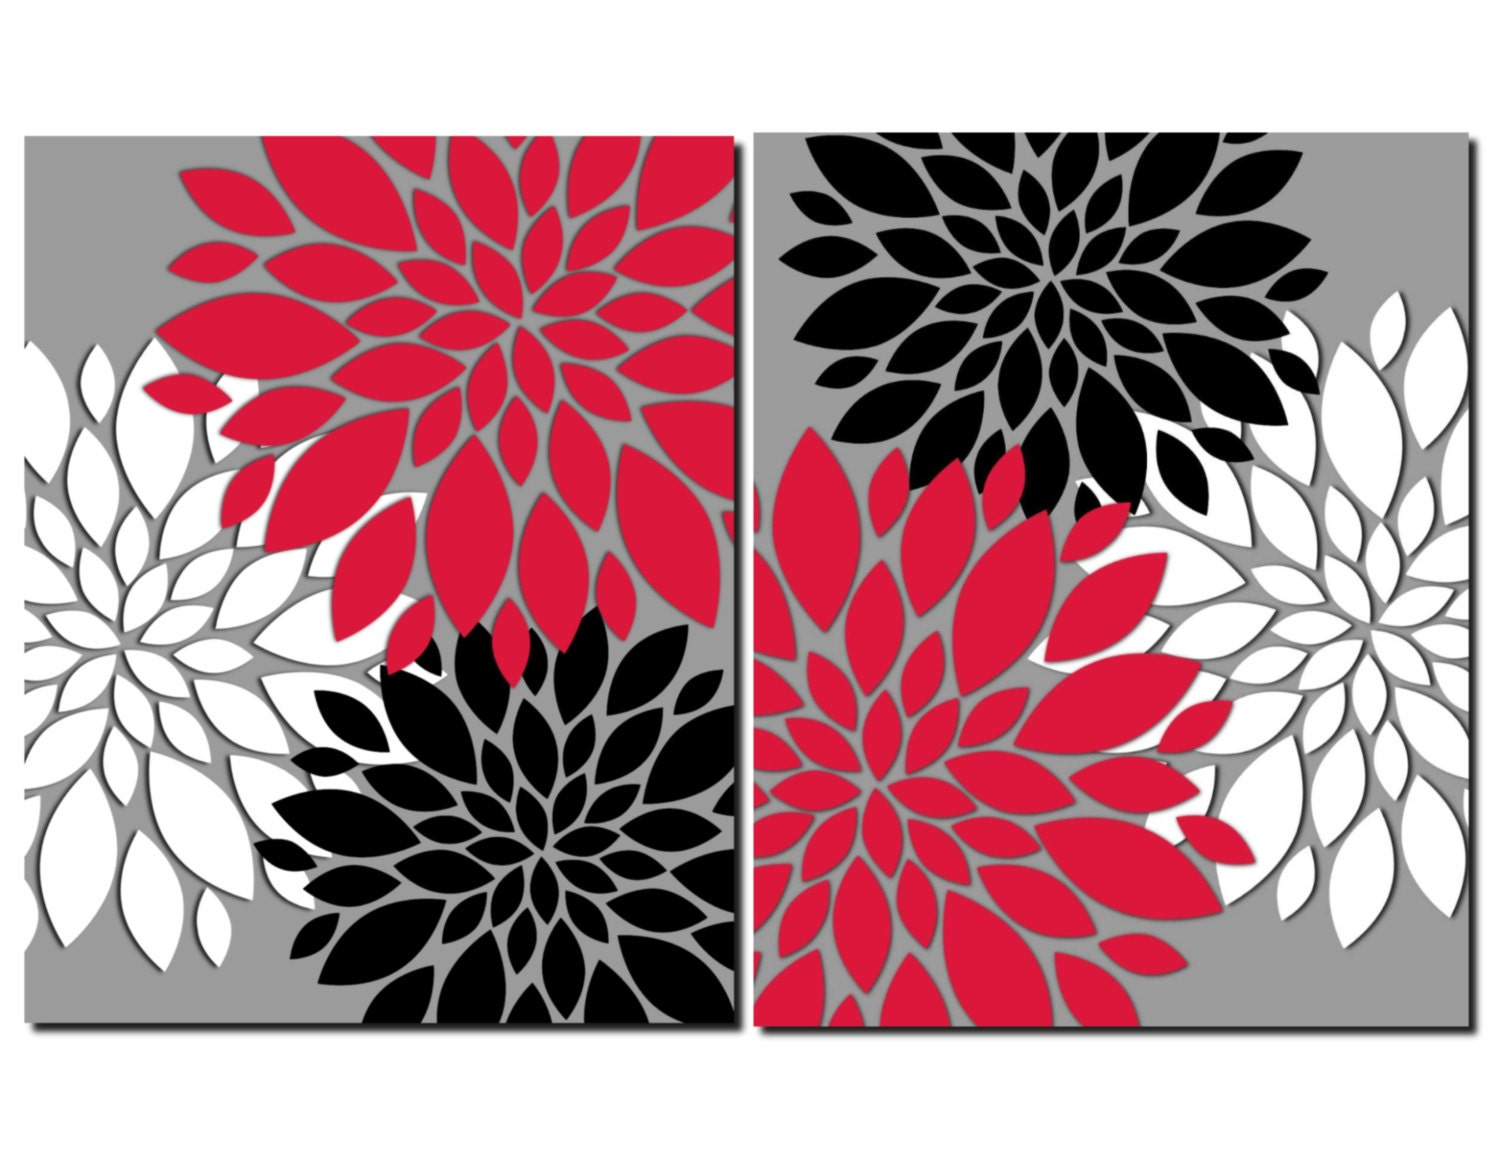 Red gray black white wall art prints or canvas bathroom decor for Black white red bathroom decor